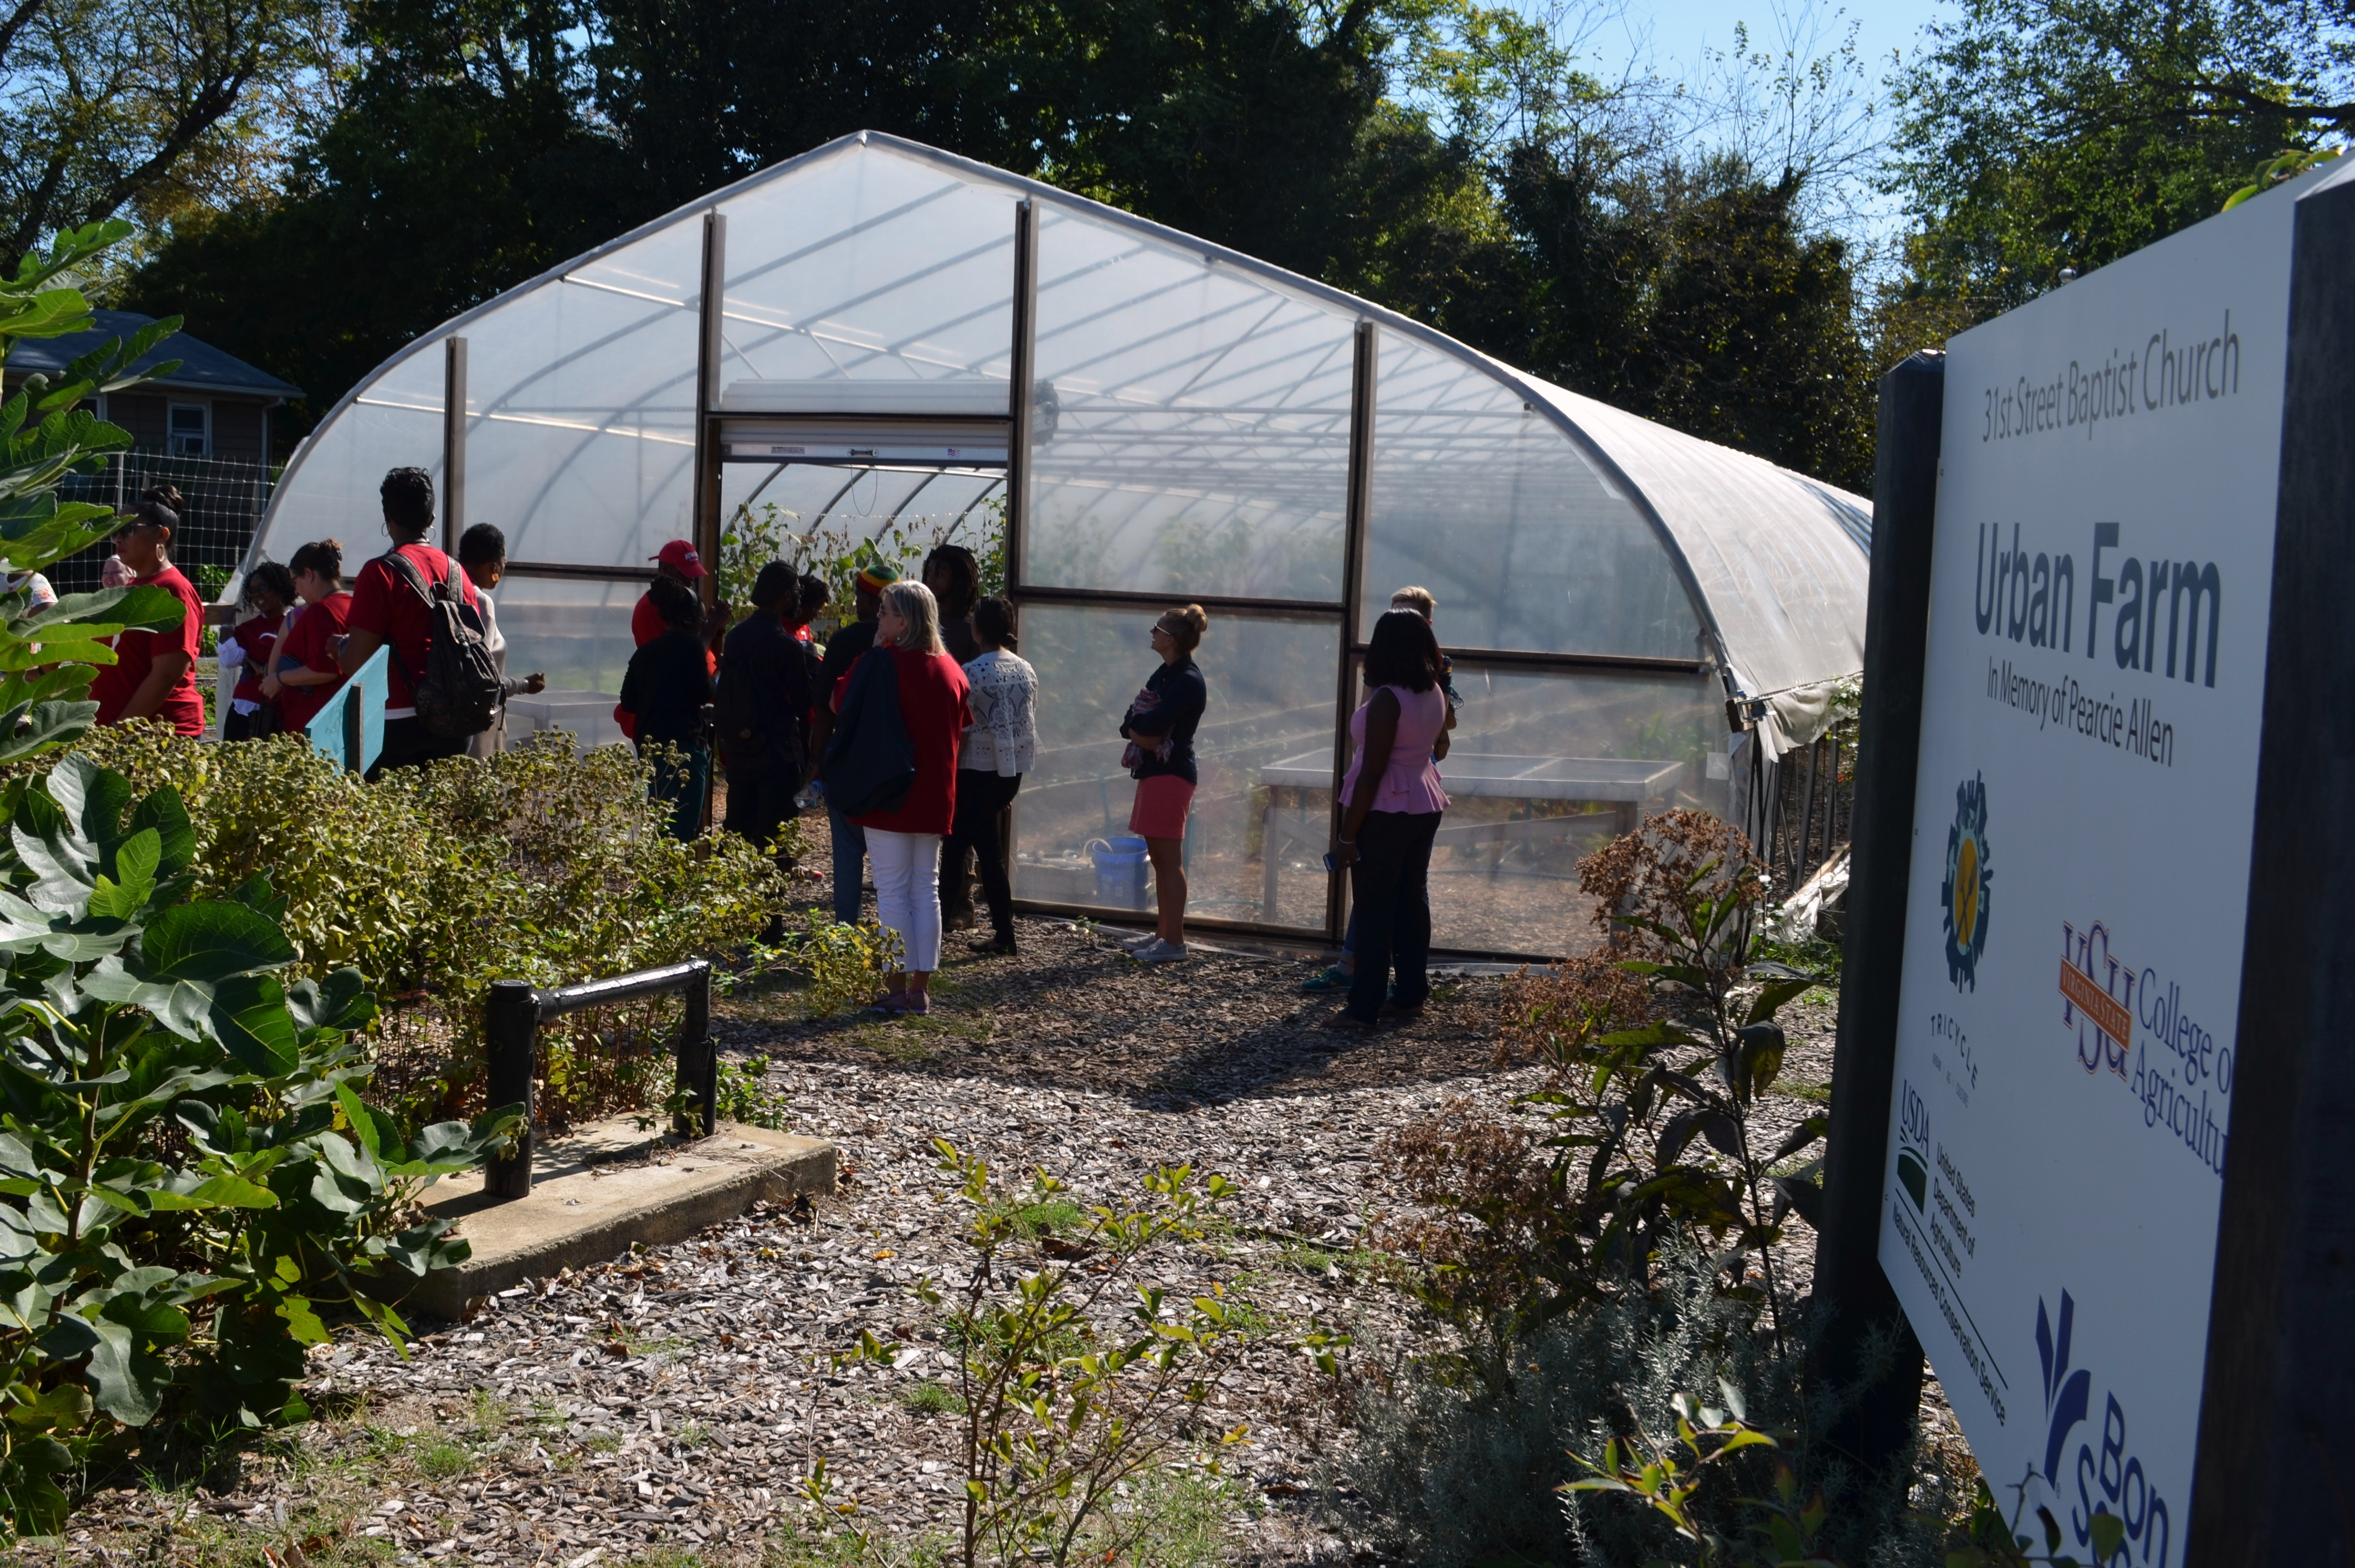 Participants learn about urban farming at the 31st Street Baptist Church Urban Farm.